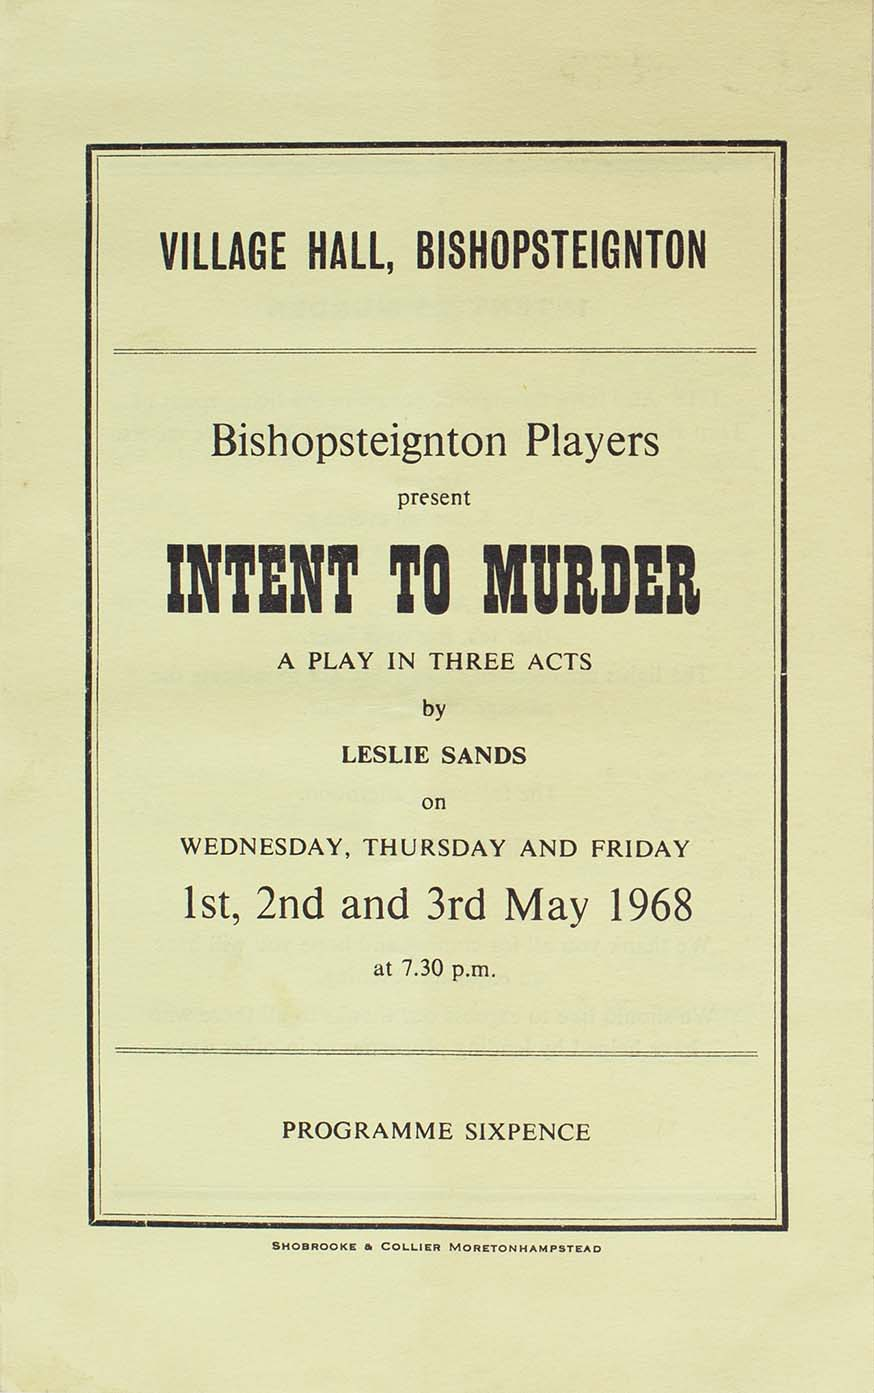 Programme for the play 'Intent to Murder' presented by Bishopsteignton Players front